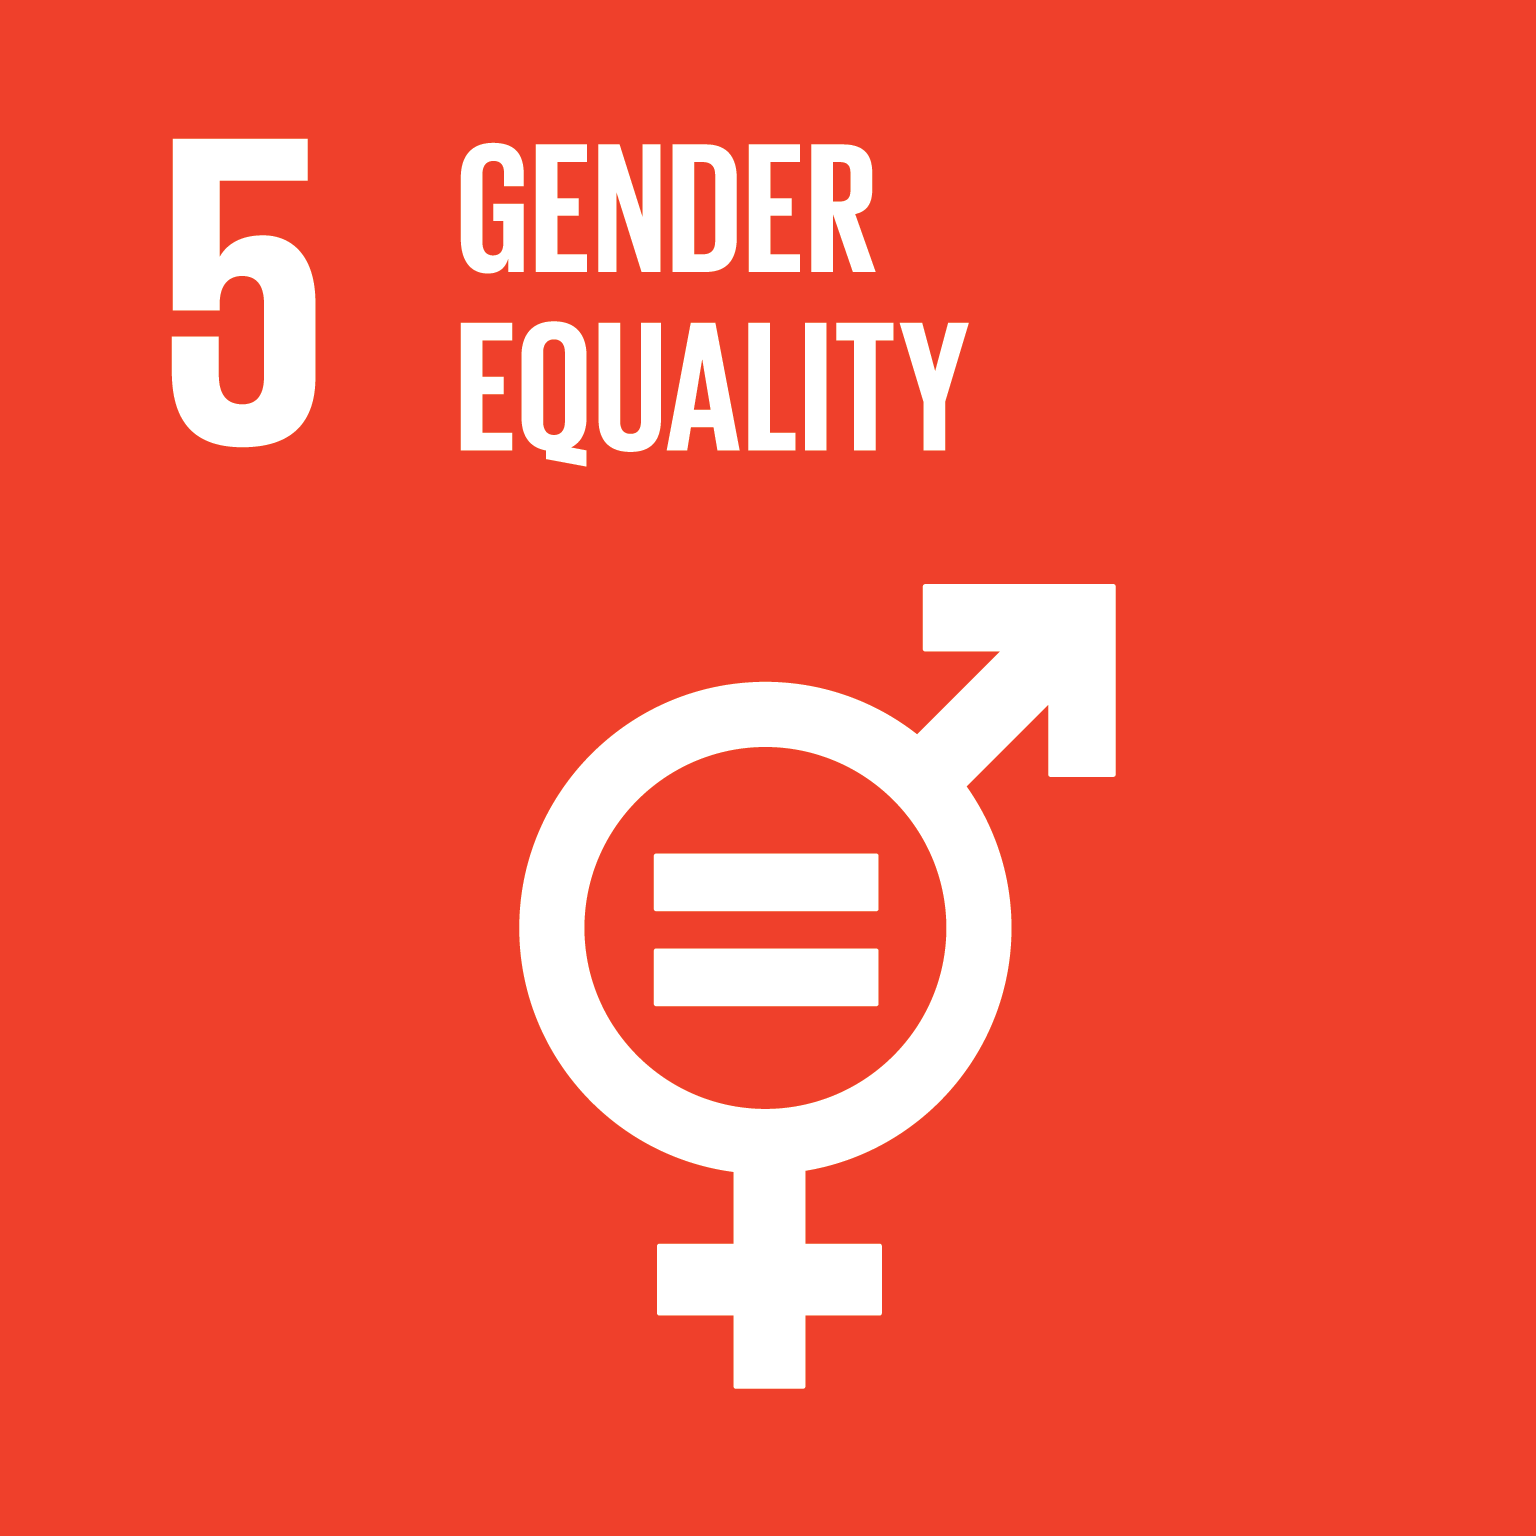 Gender equality logo.